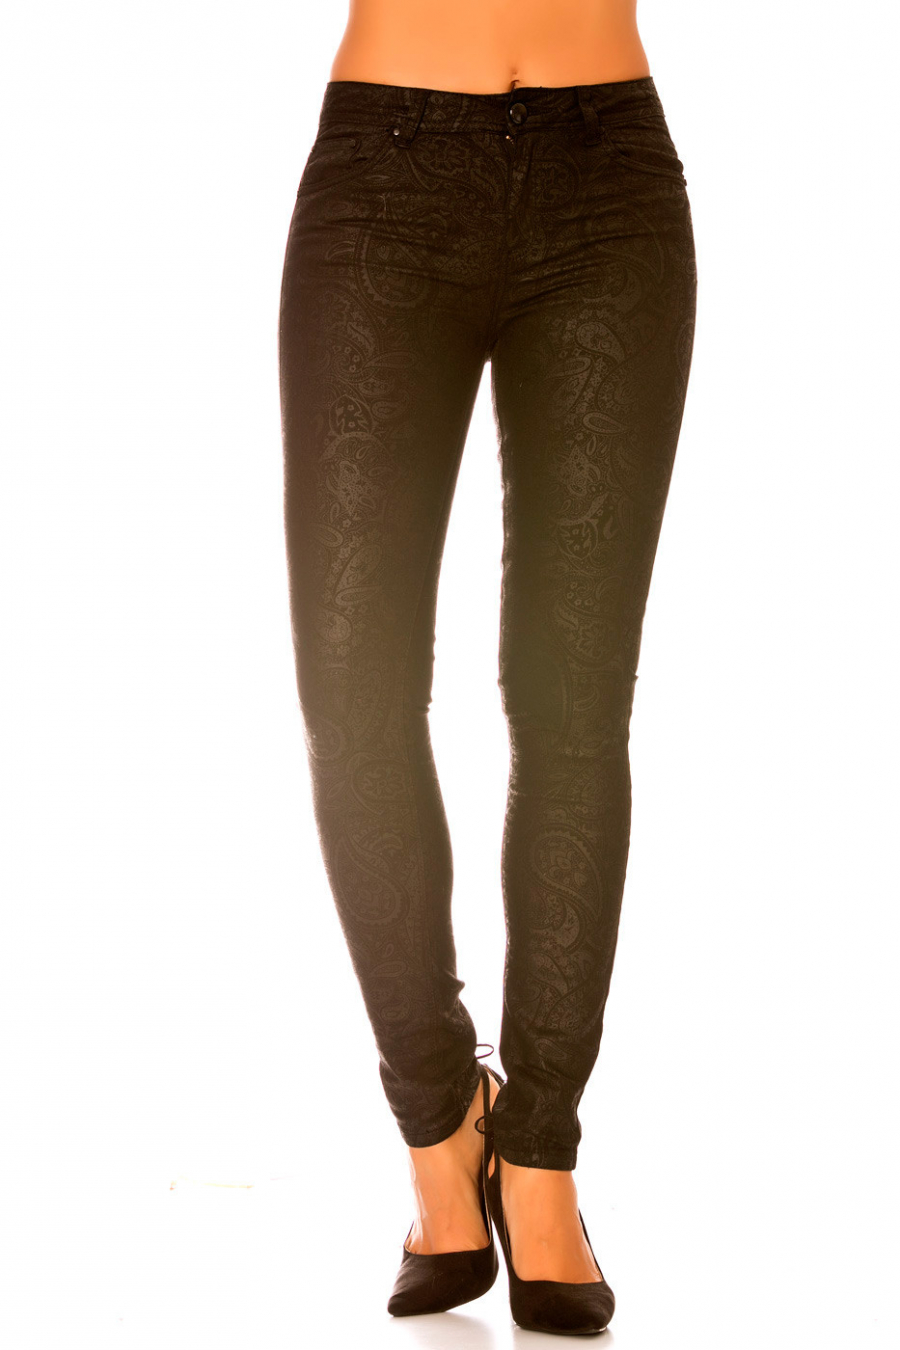 Pantalon fashion en noir avec motif noir. Pantalon femme fashion ptl s1865